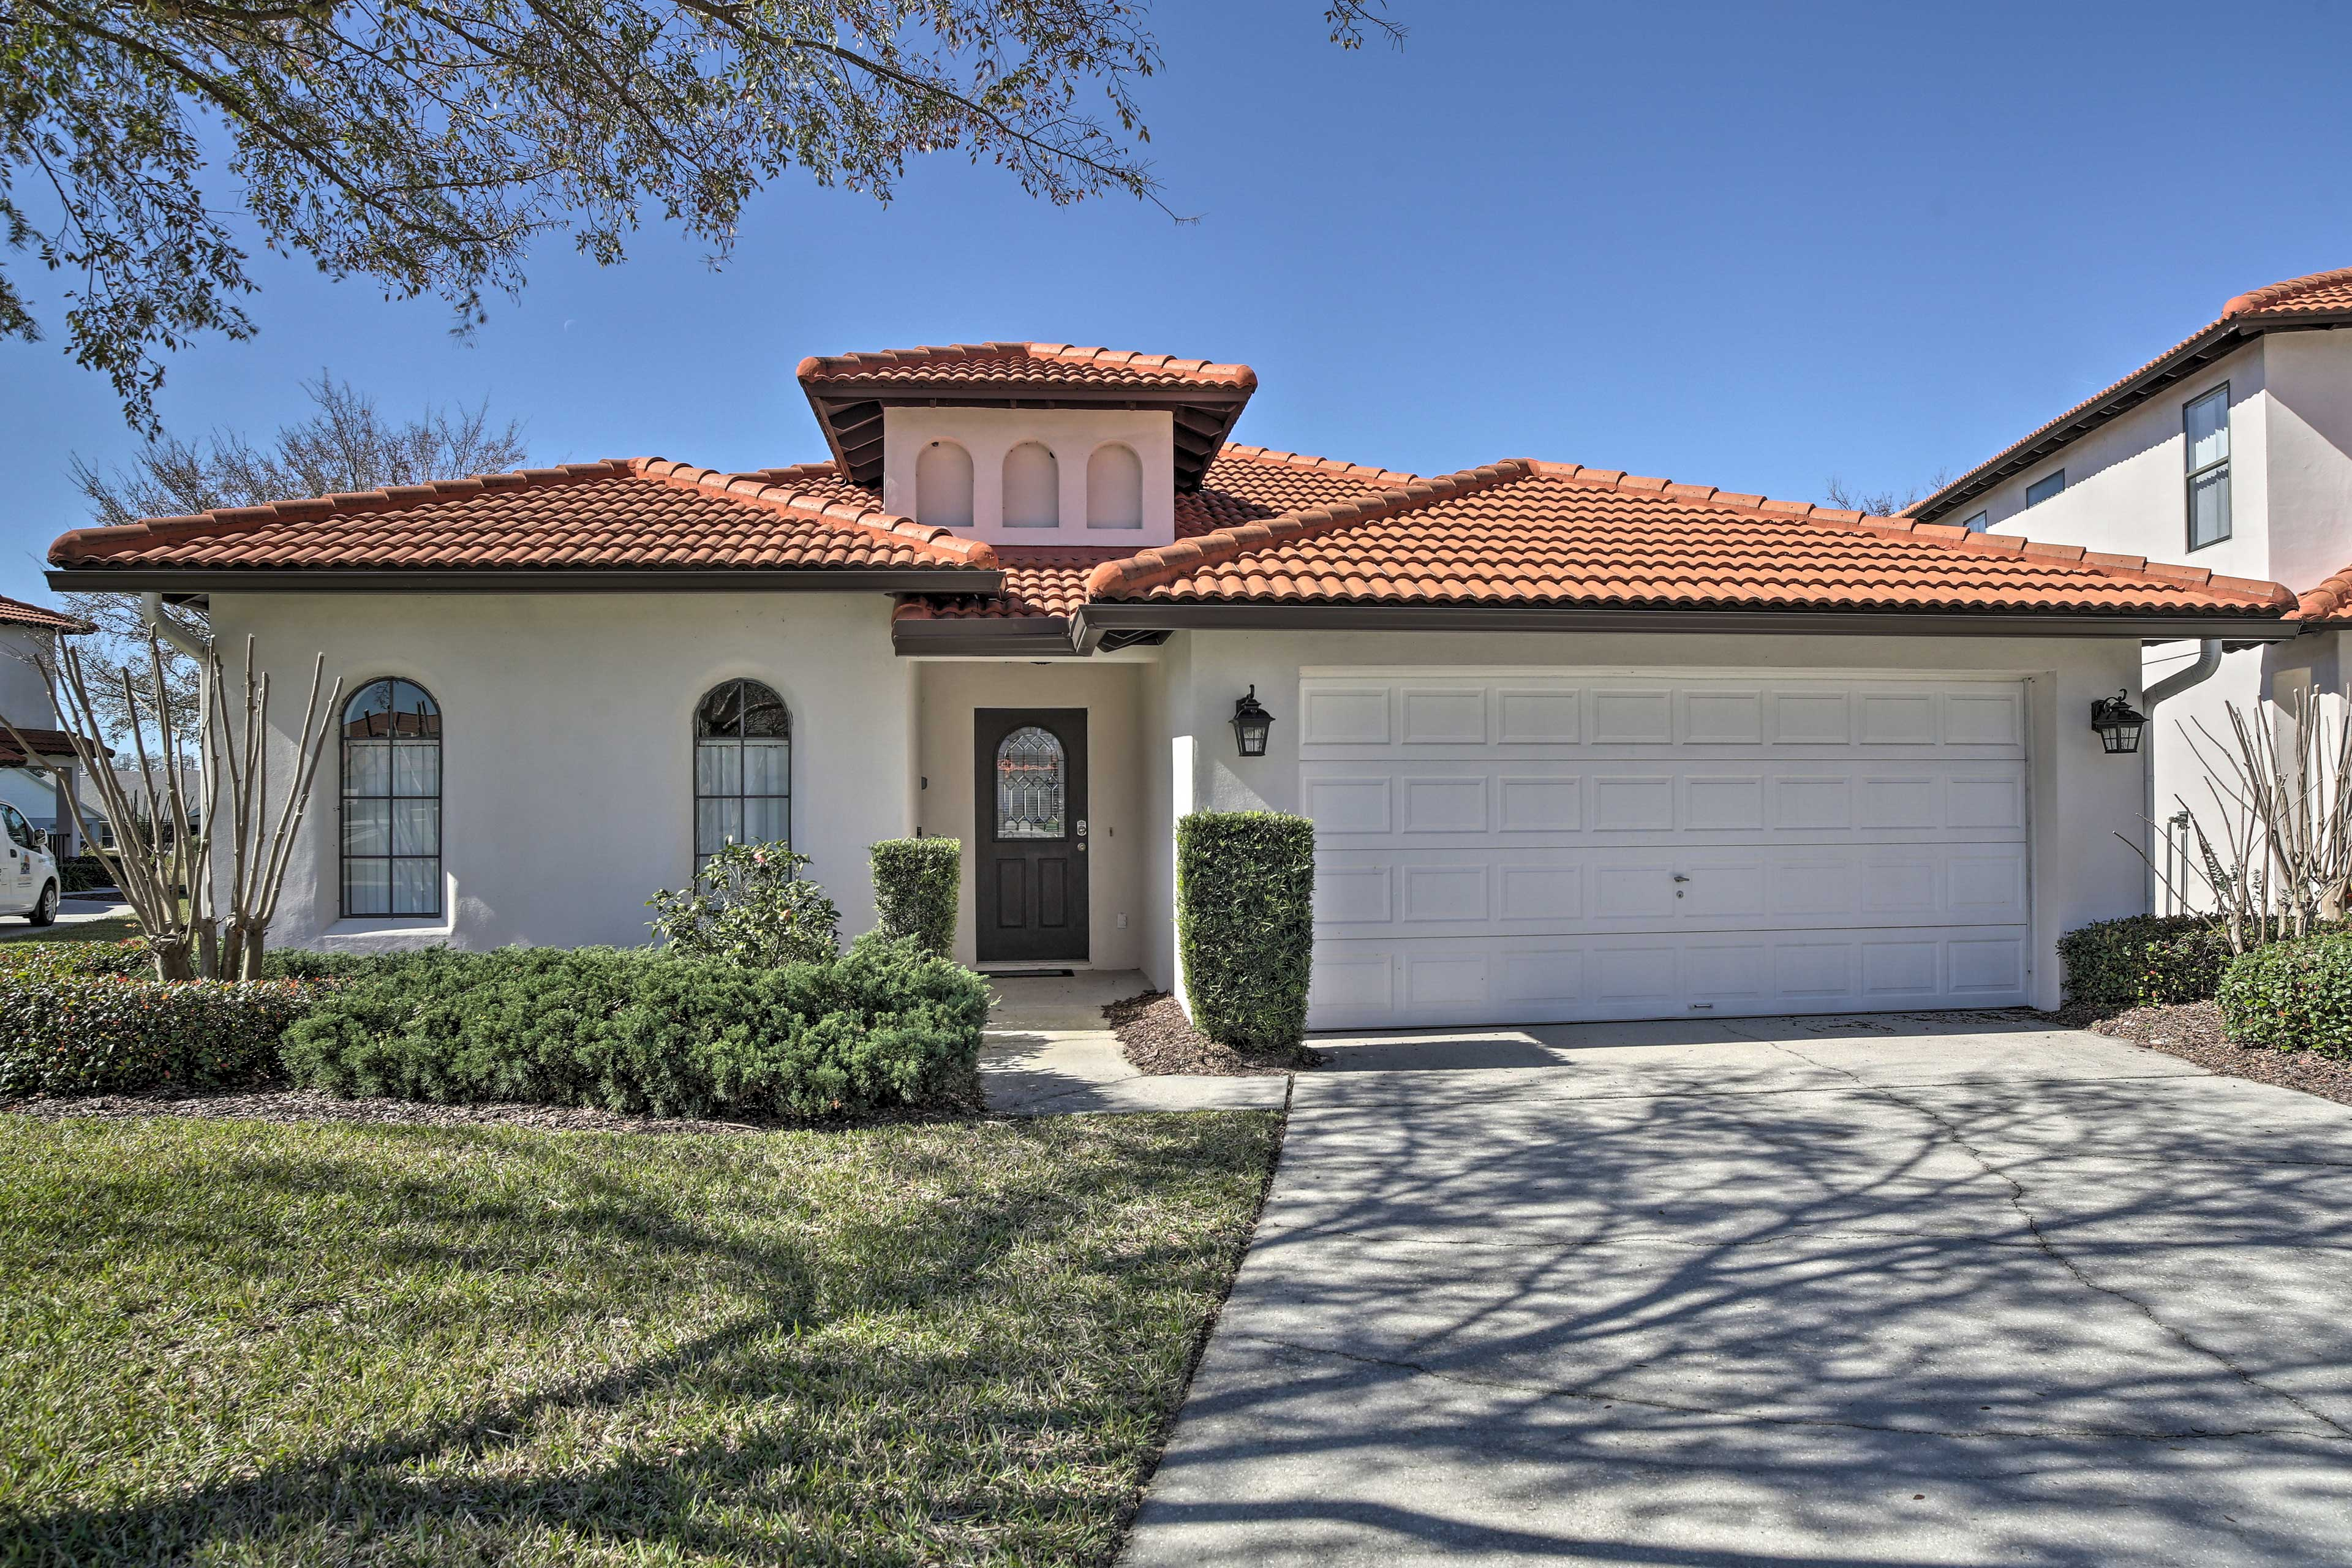 Let this lovely villa be your home base during your Clermont adventures!